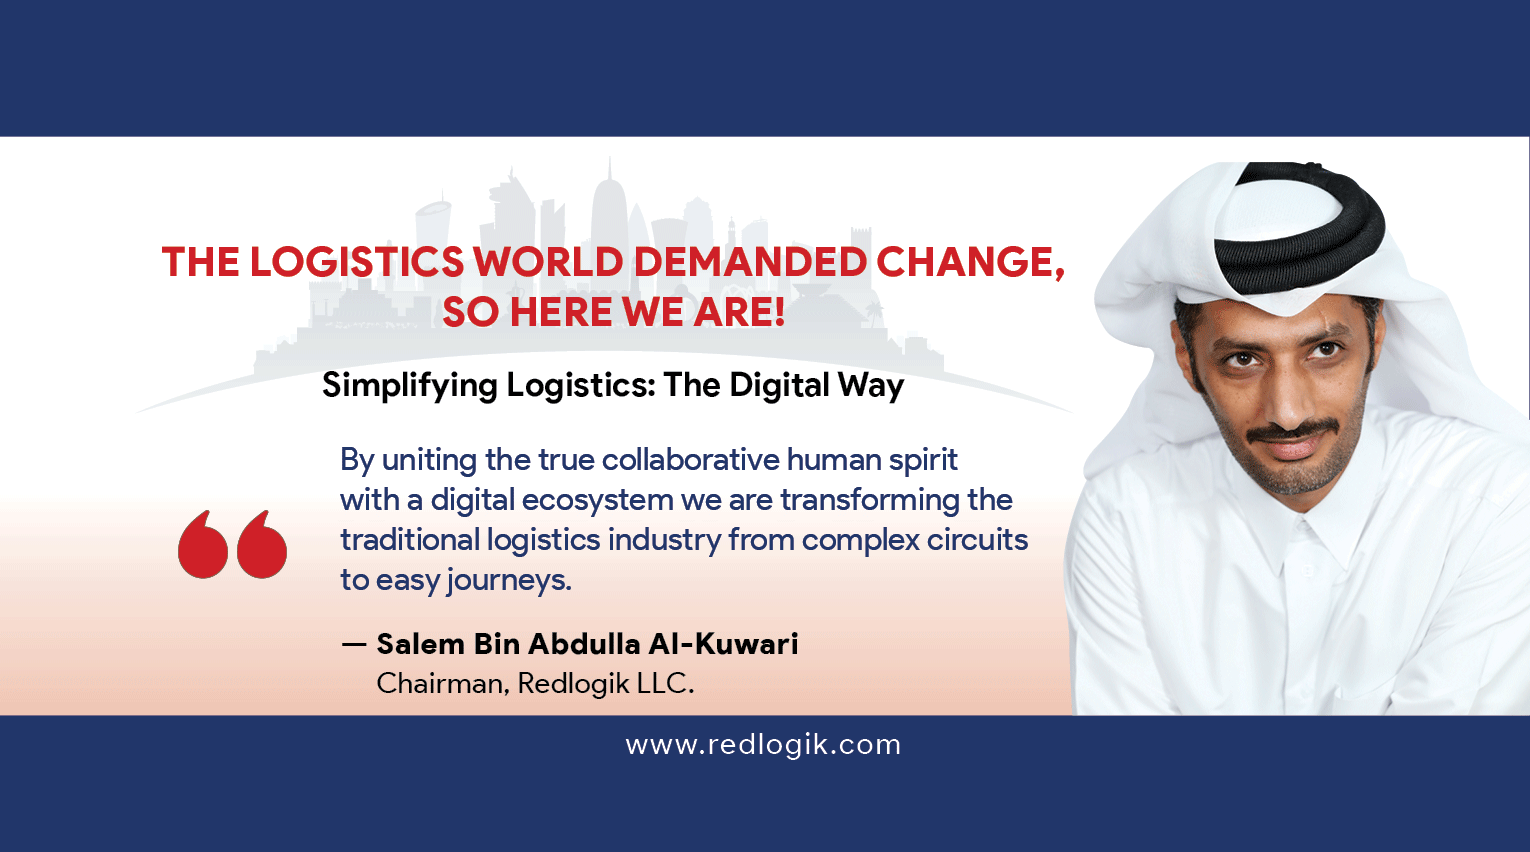 Discover what our evangelist has to say about digitalised logistics.